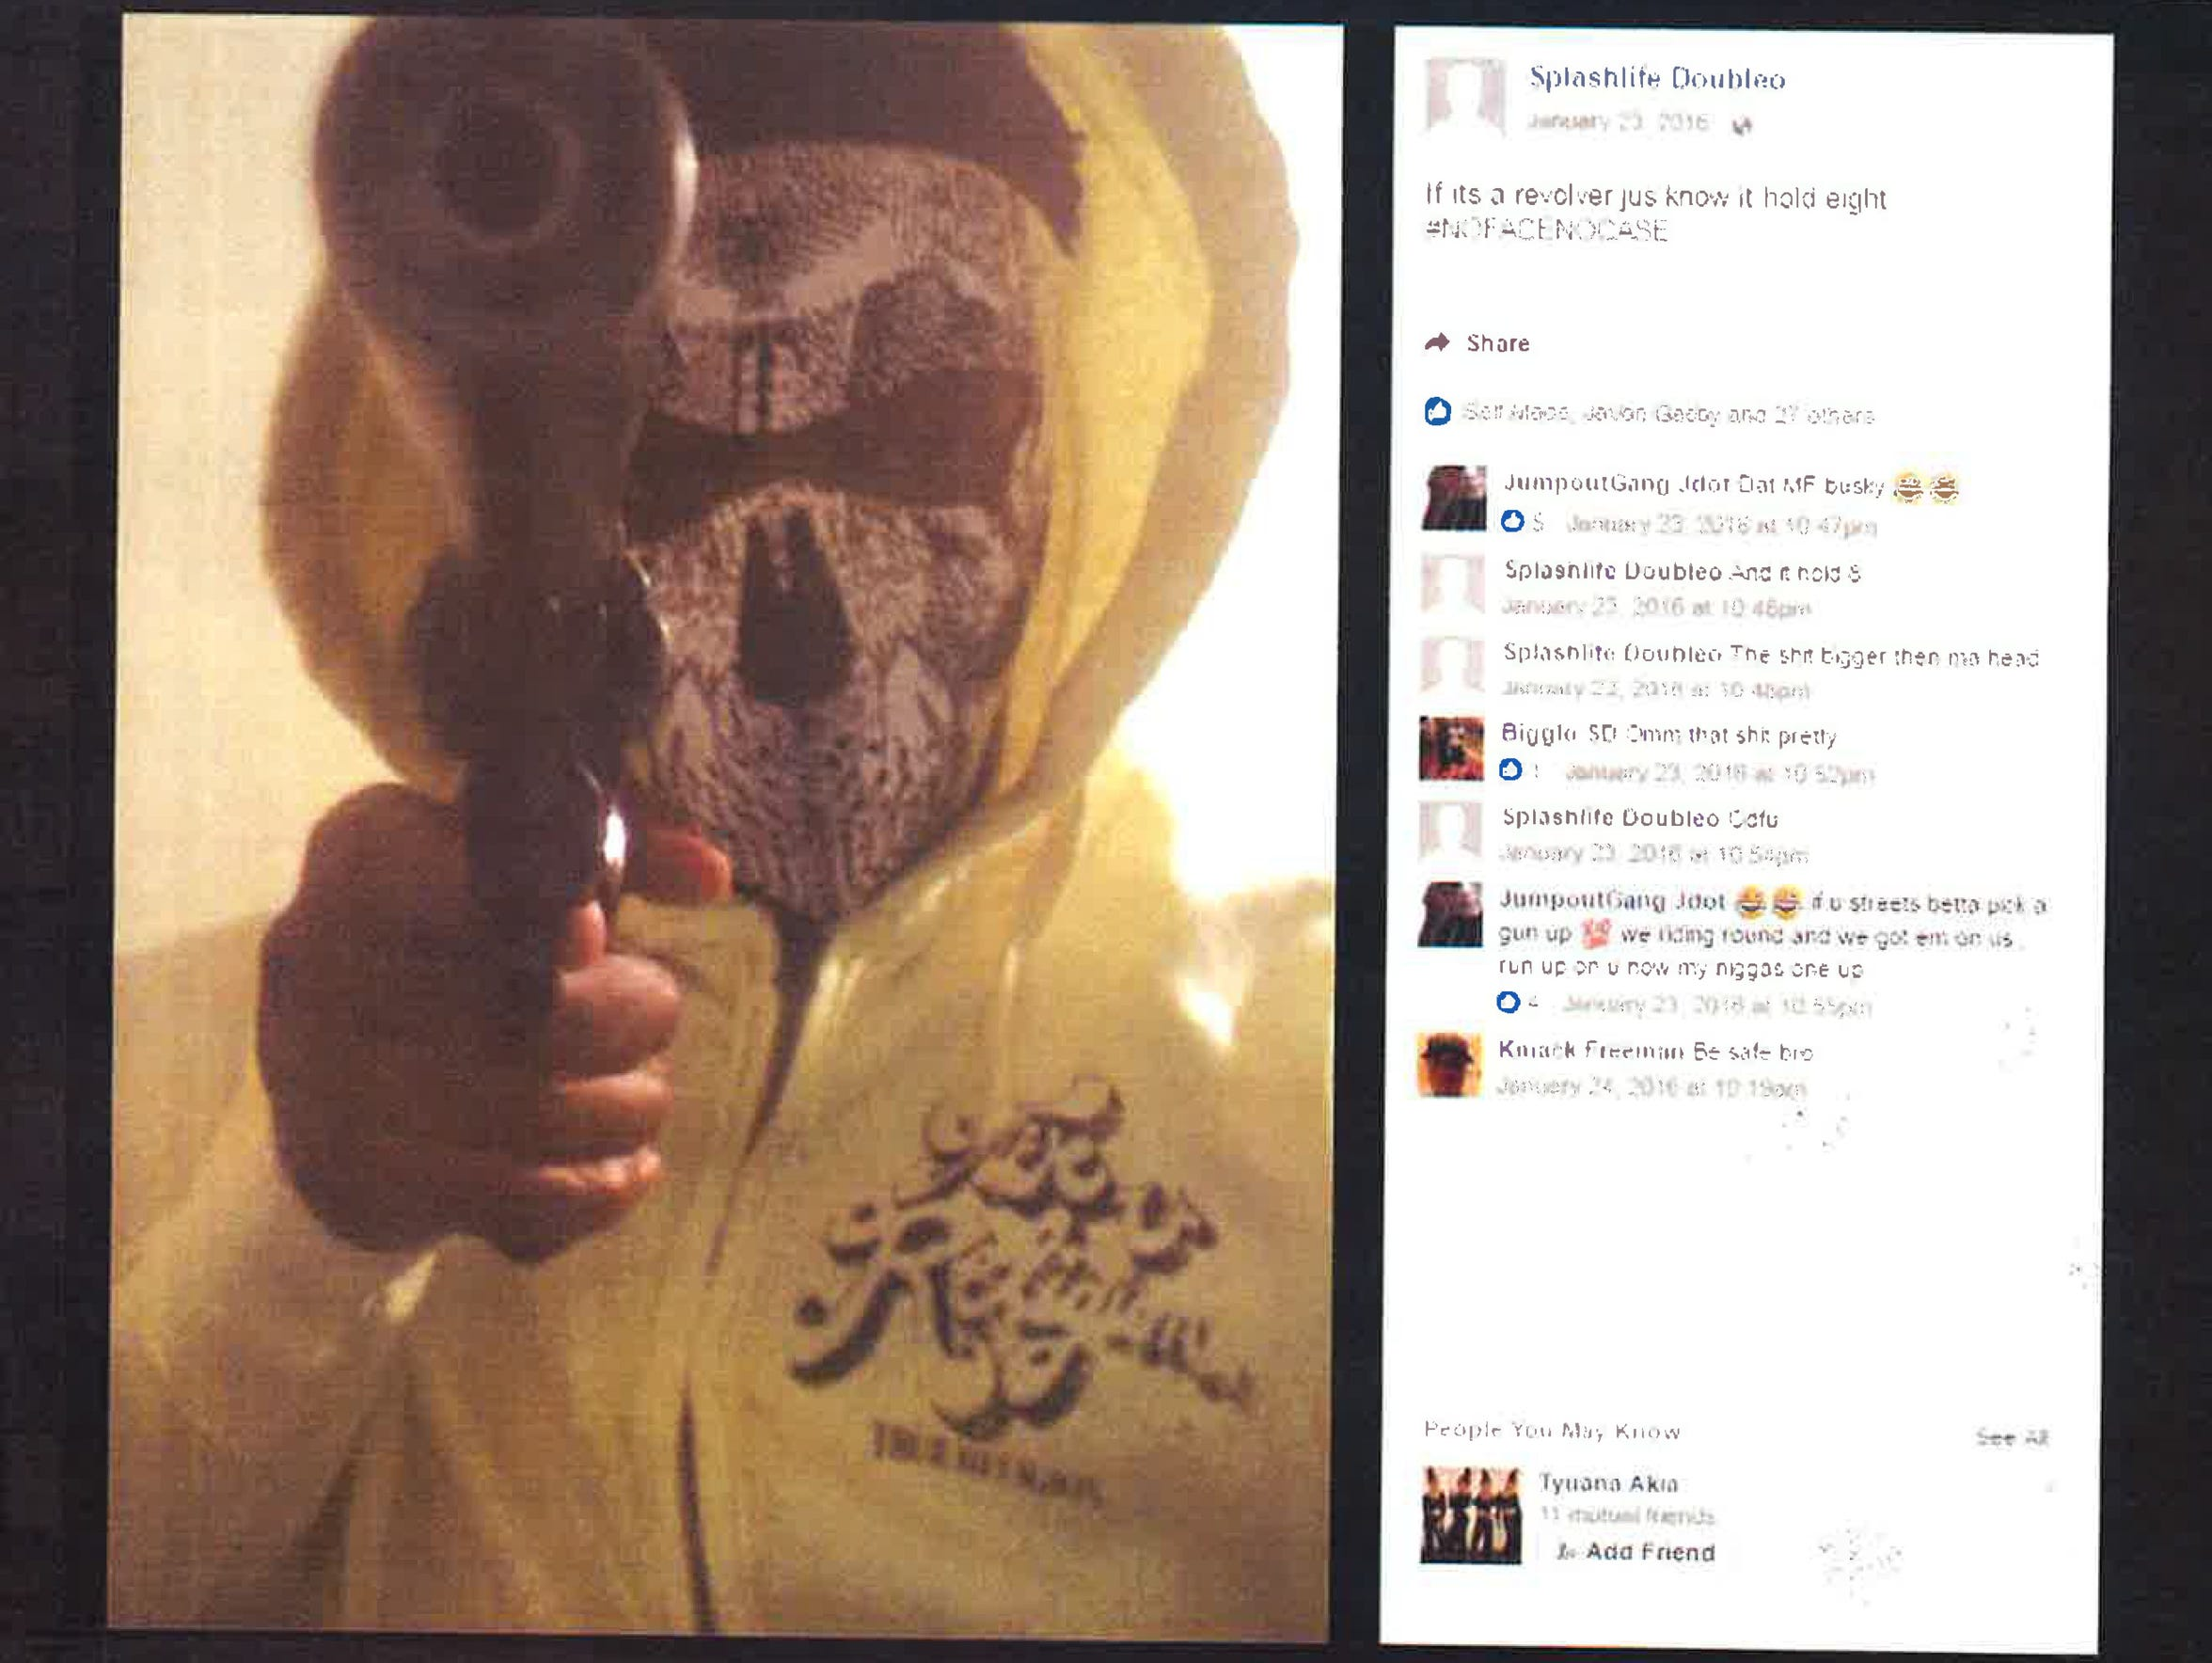 Sha'Mir Sudler poses with a gun and a mask over his